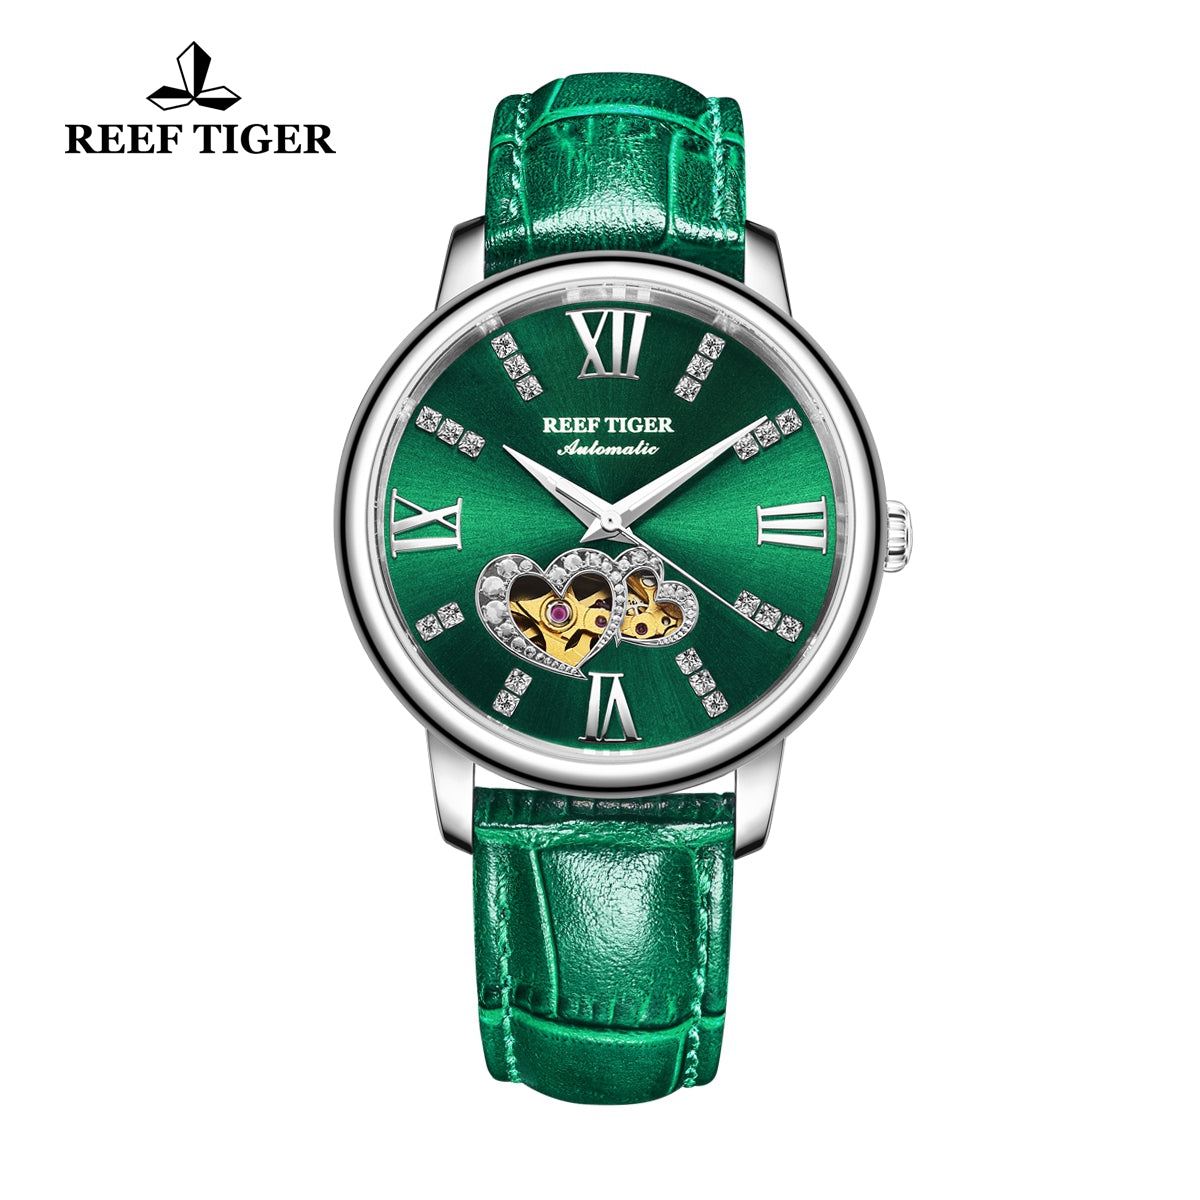 Reef Tiger Steel Automatic Leather Strap with Green Dial Watch RGA1580